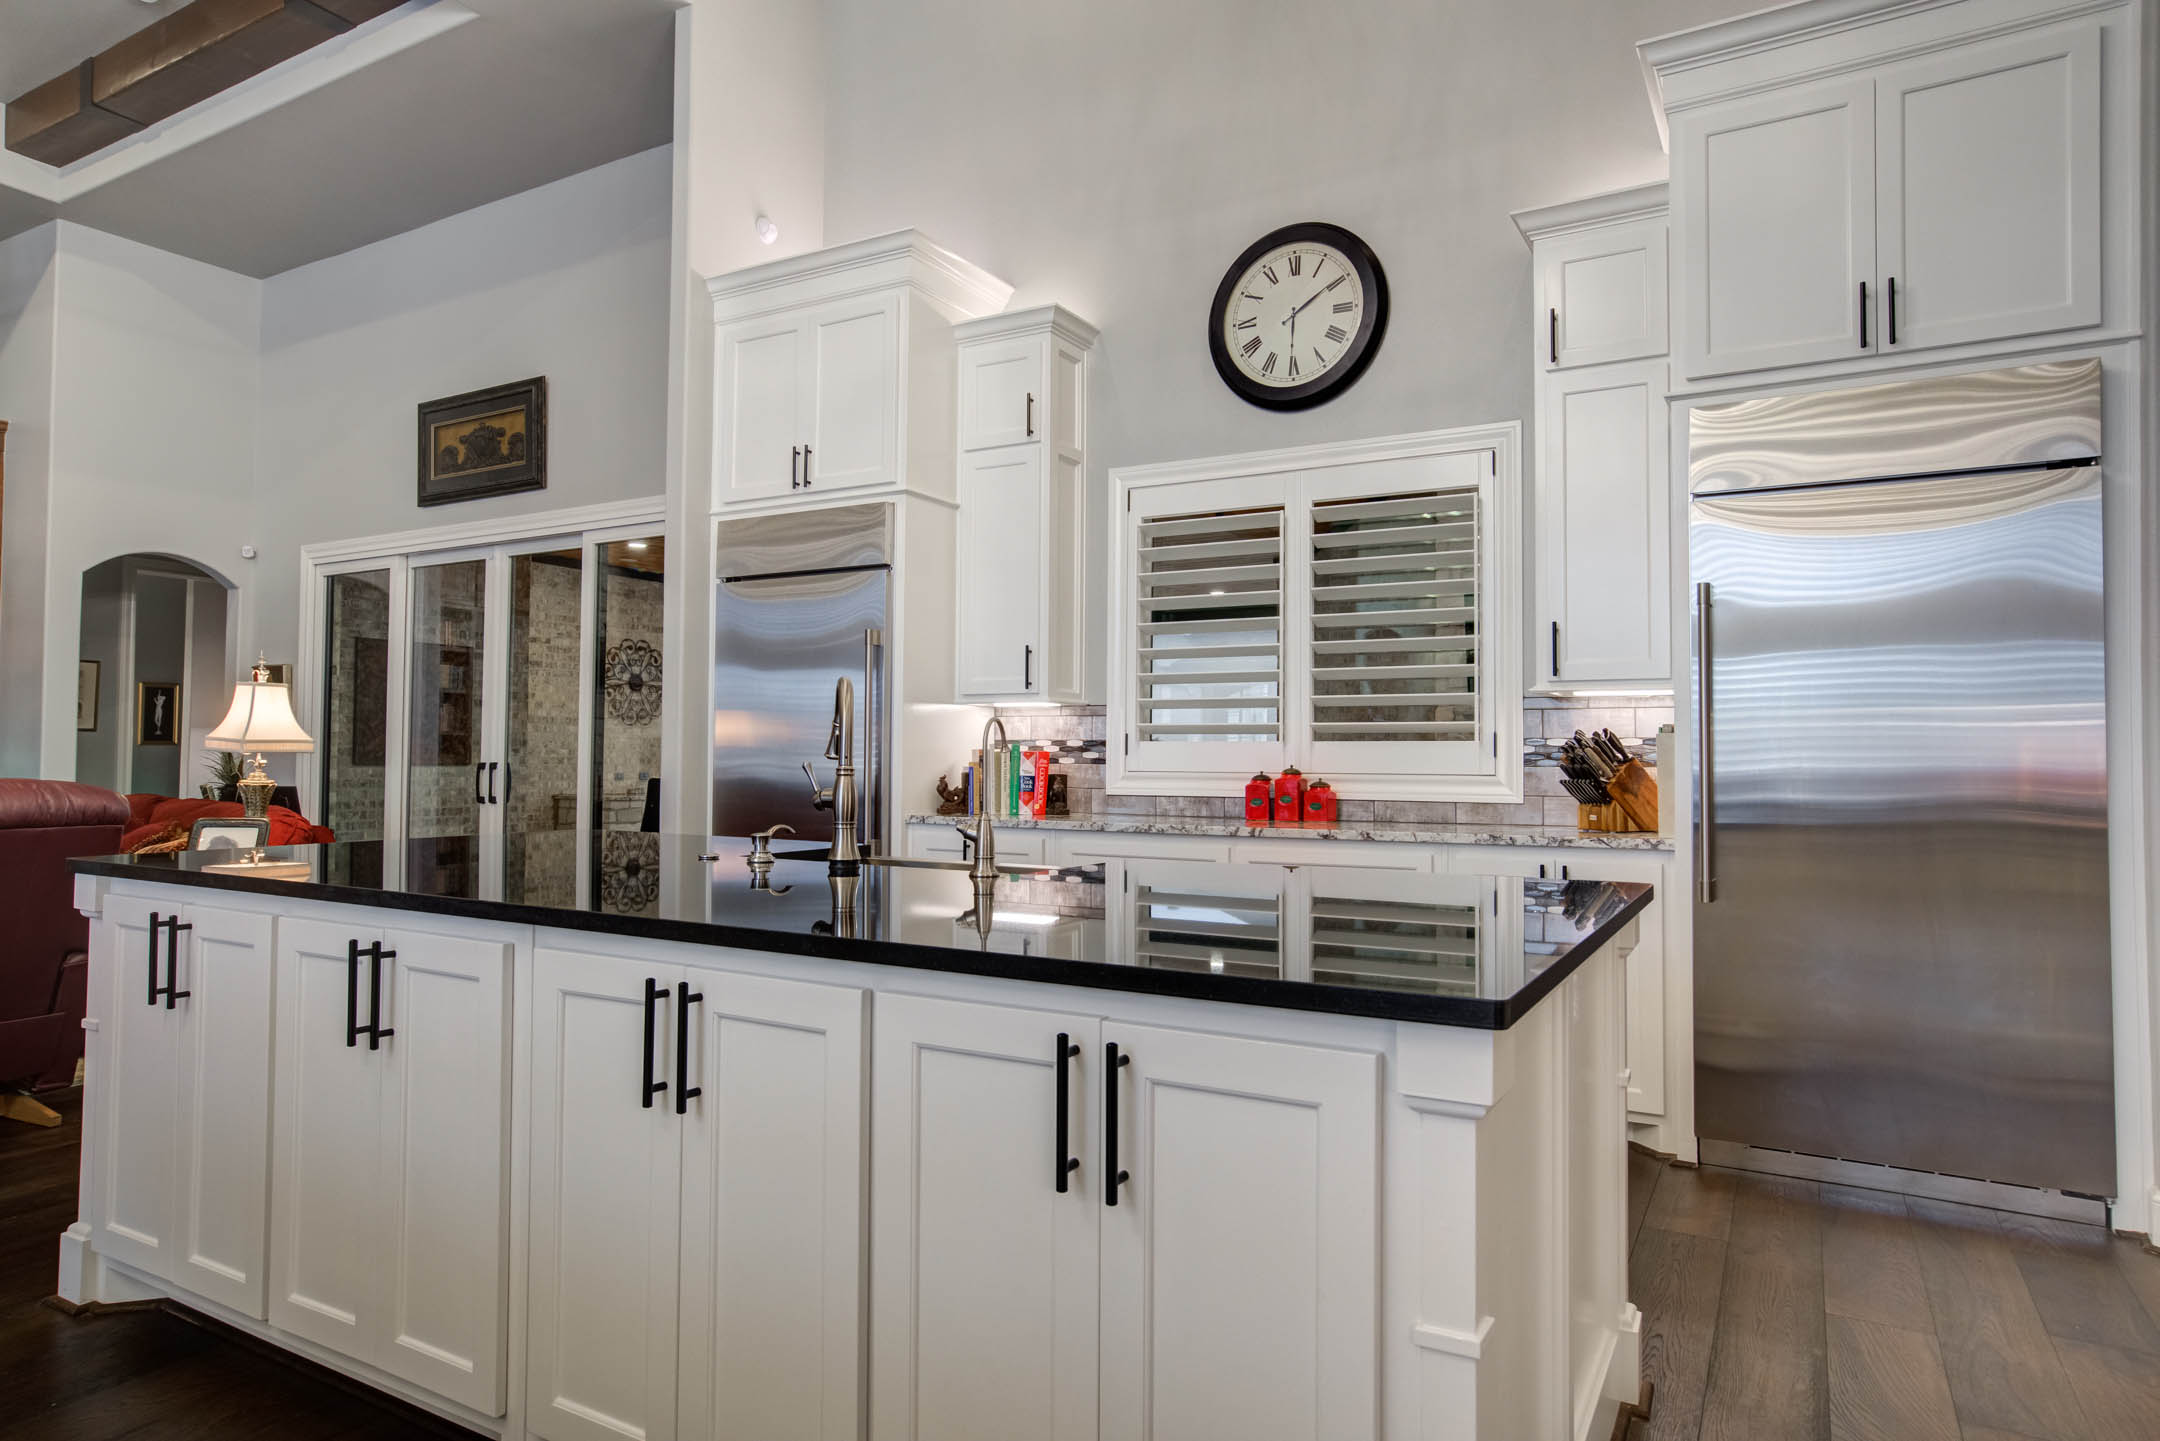 Lots of counter space in beautiful kitchen in custom home in Lubbock, Texas.